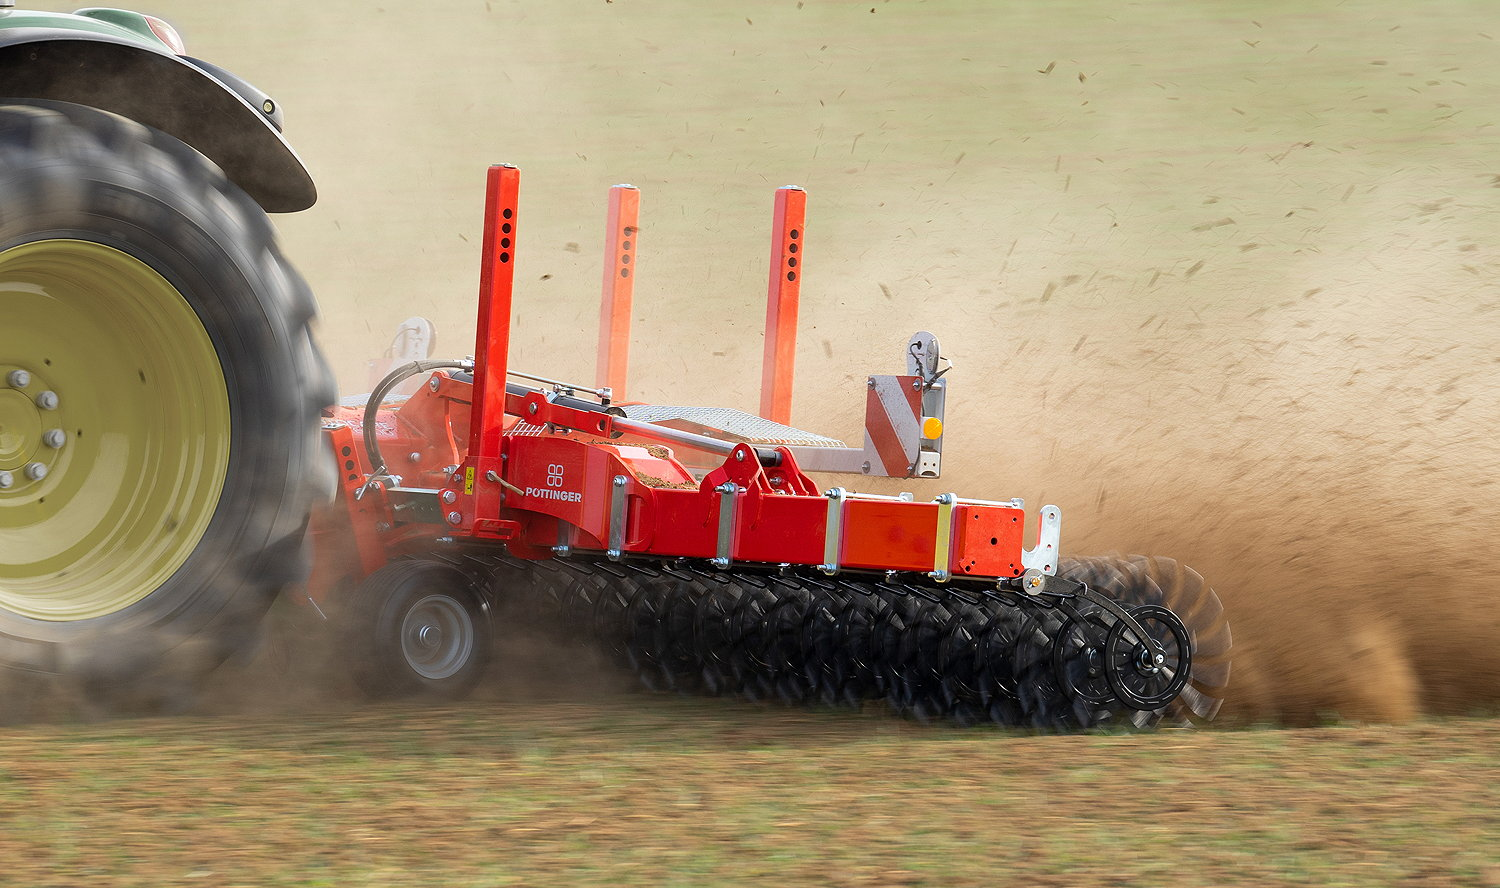 The Pöttinger RotoCare rotary hoe is used at 10 to 30 km/hr